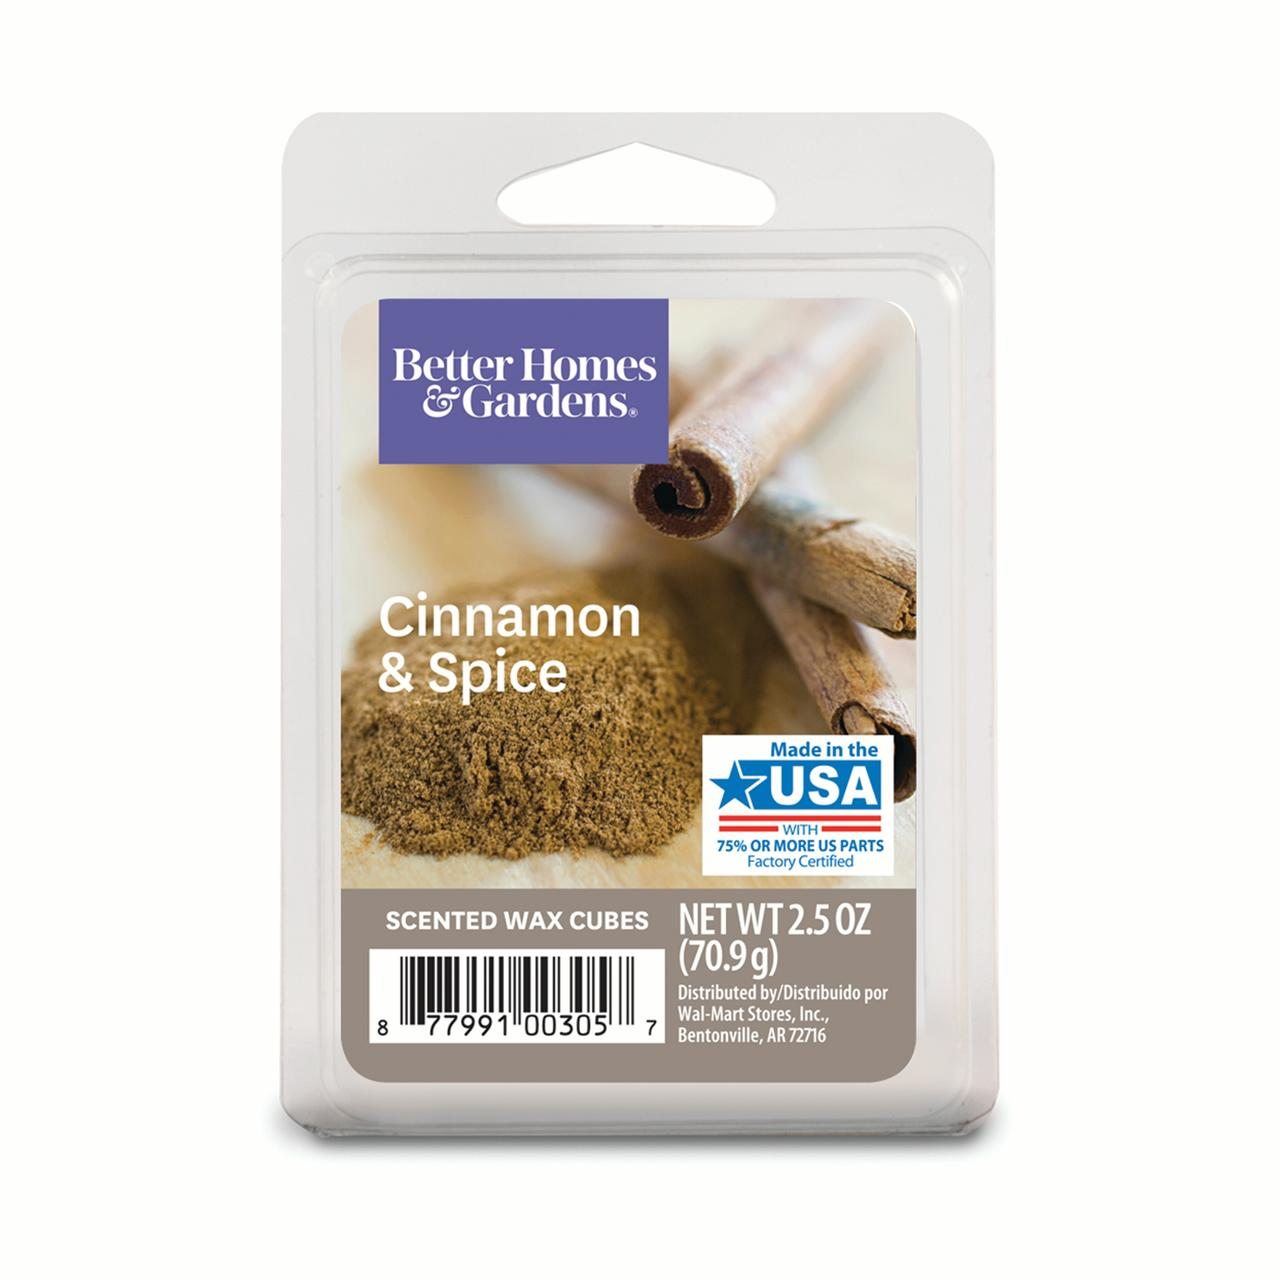 Better Homes and Gardens Wax Cubes, Cinnamon Spice